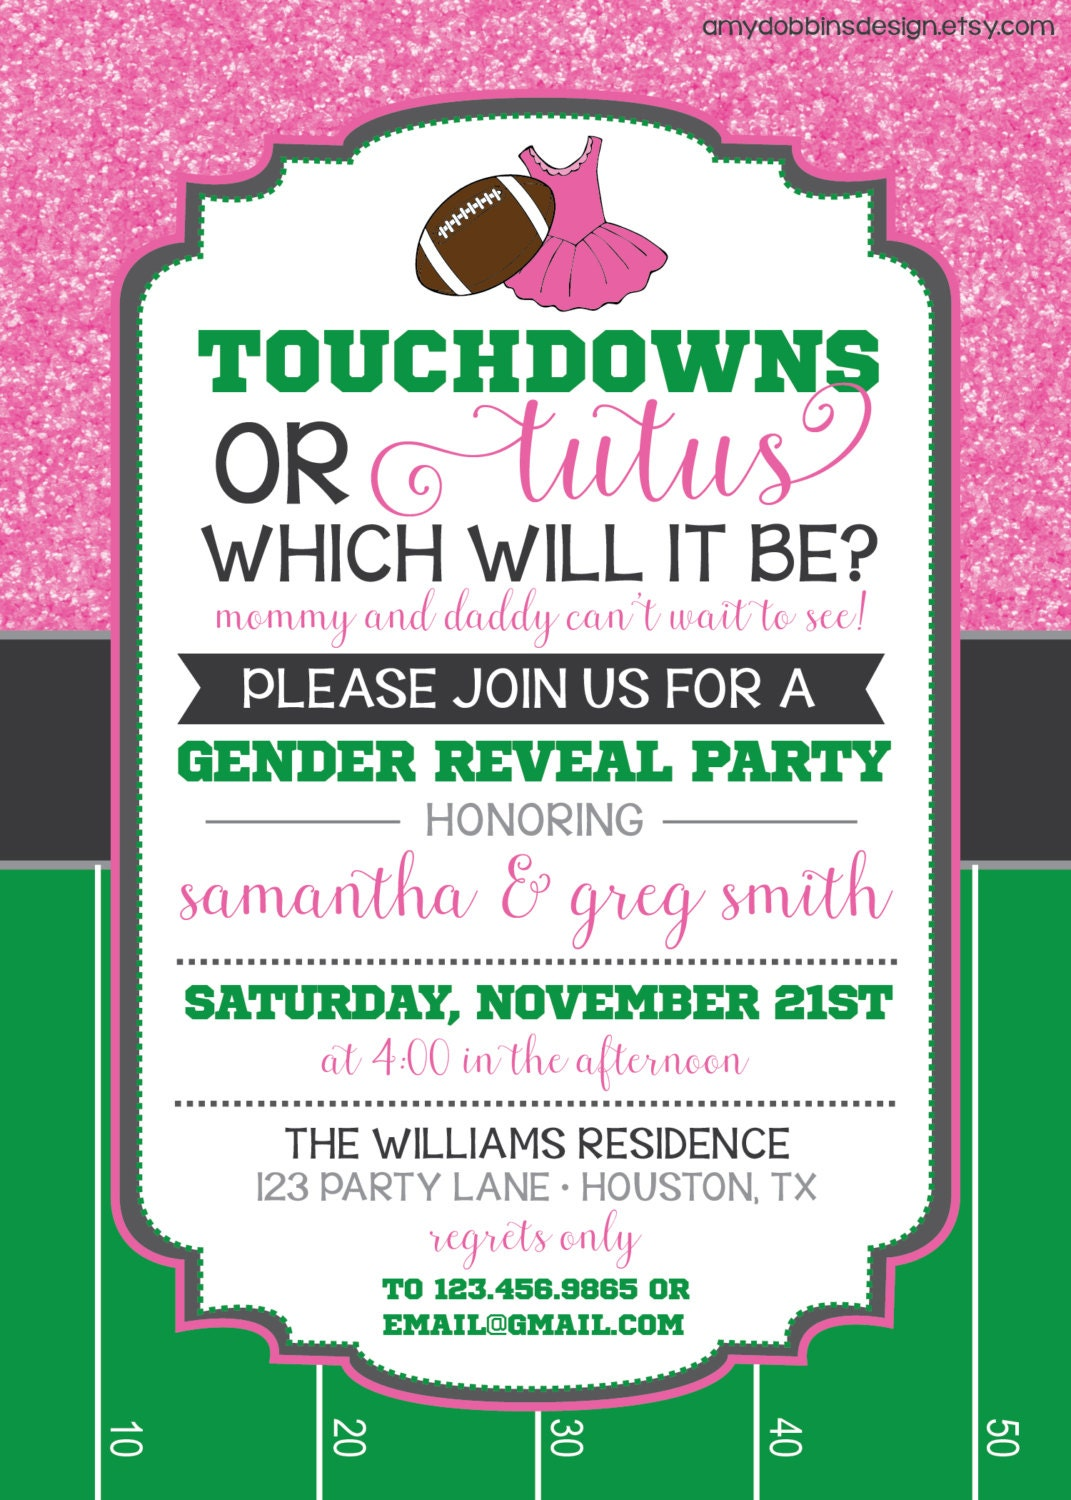 Touchdowns or Tutus Gender Reveal Invitation Custom Colors